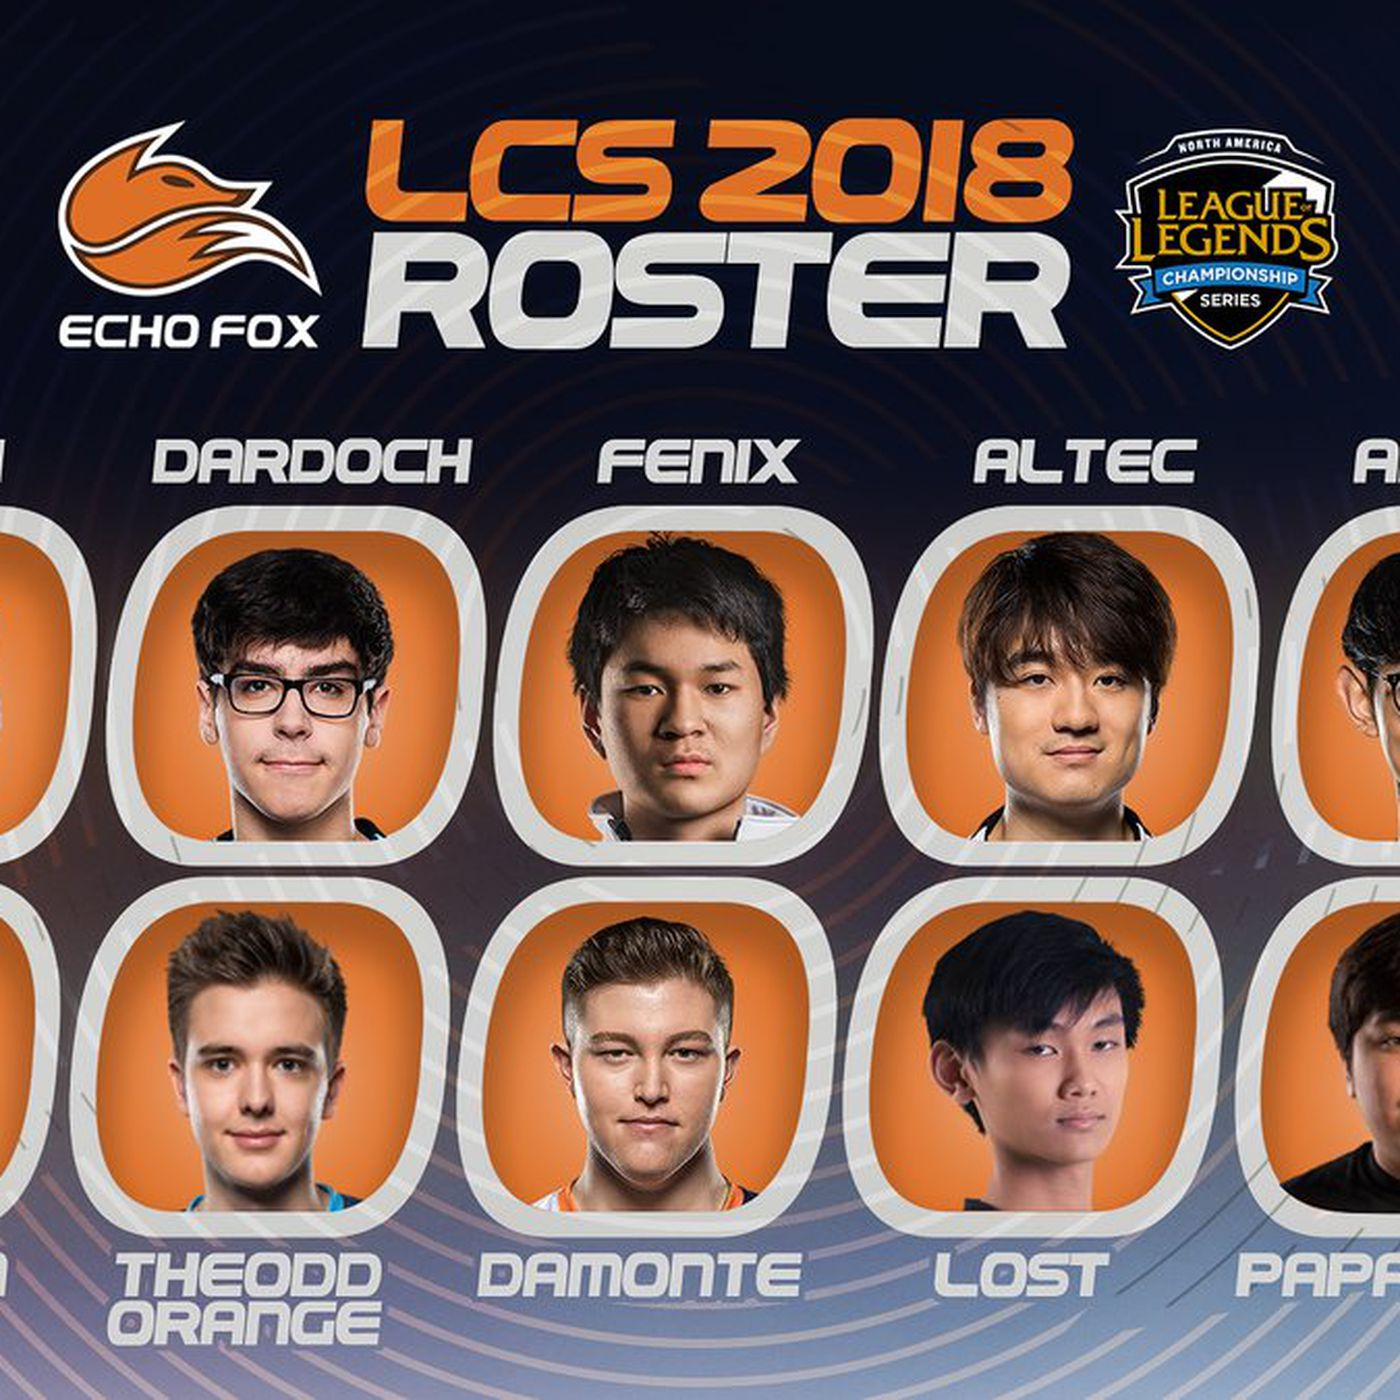 outlet store 49c81 86b15 Echo Fox reveals full roster featuring Huni, Dardoch and more